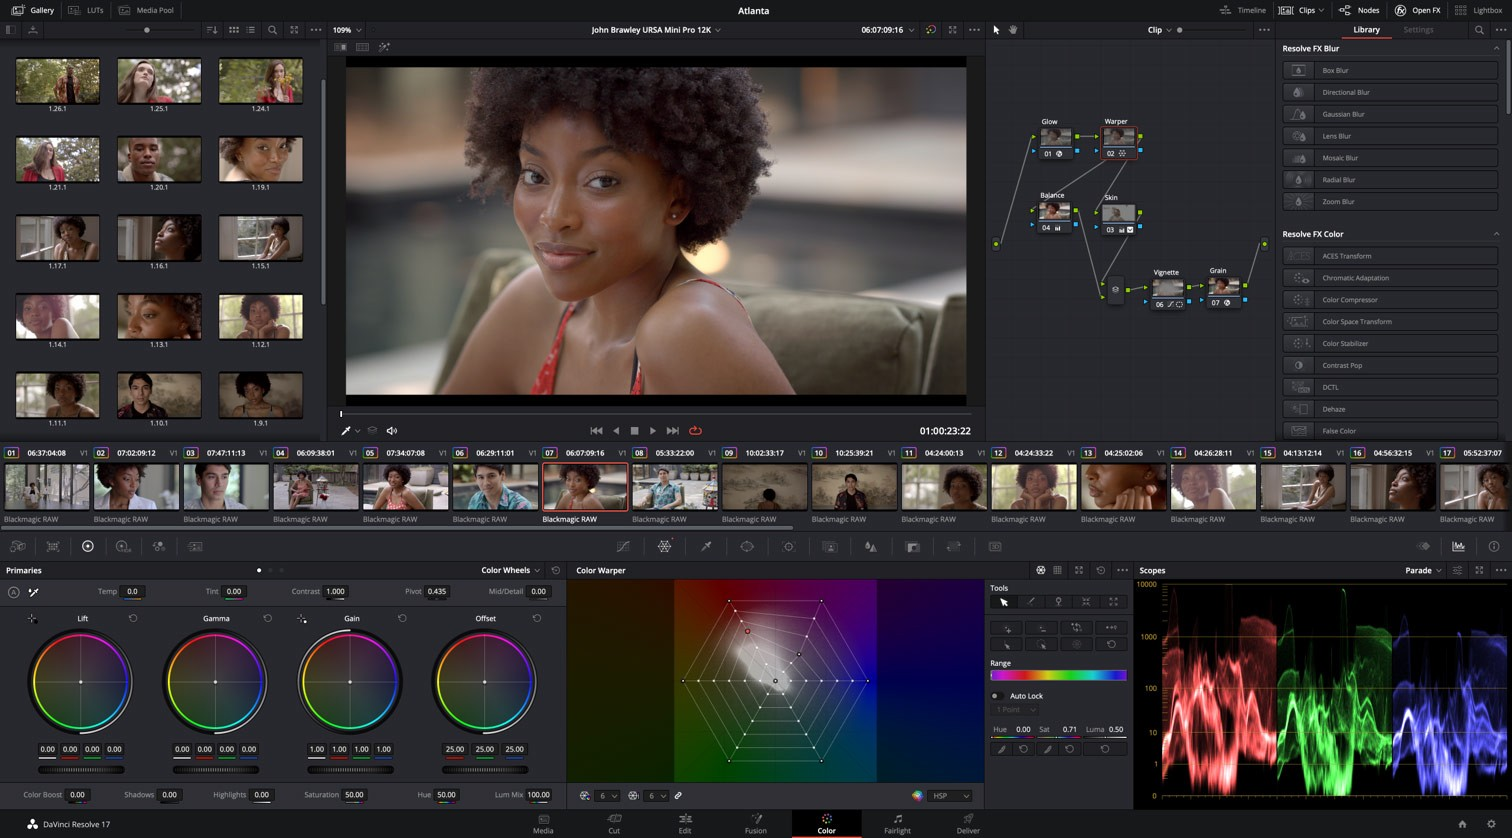 word image 2 - Blackmagic Design Announces DaVinci Resolve 17